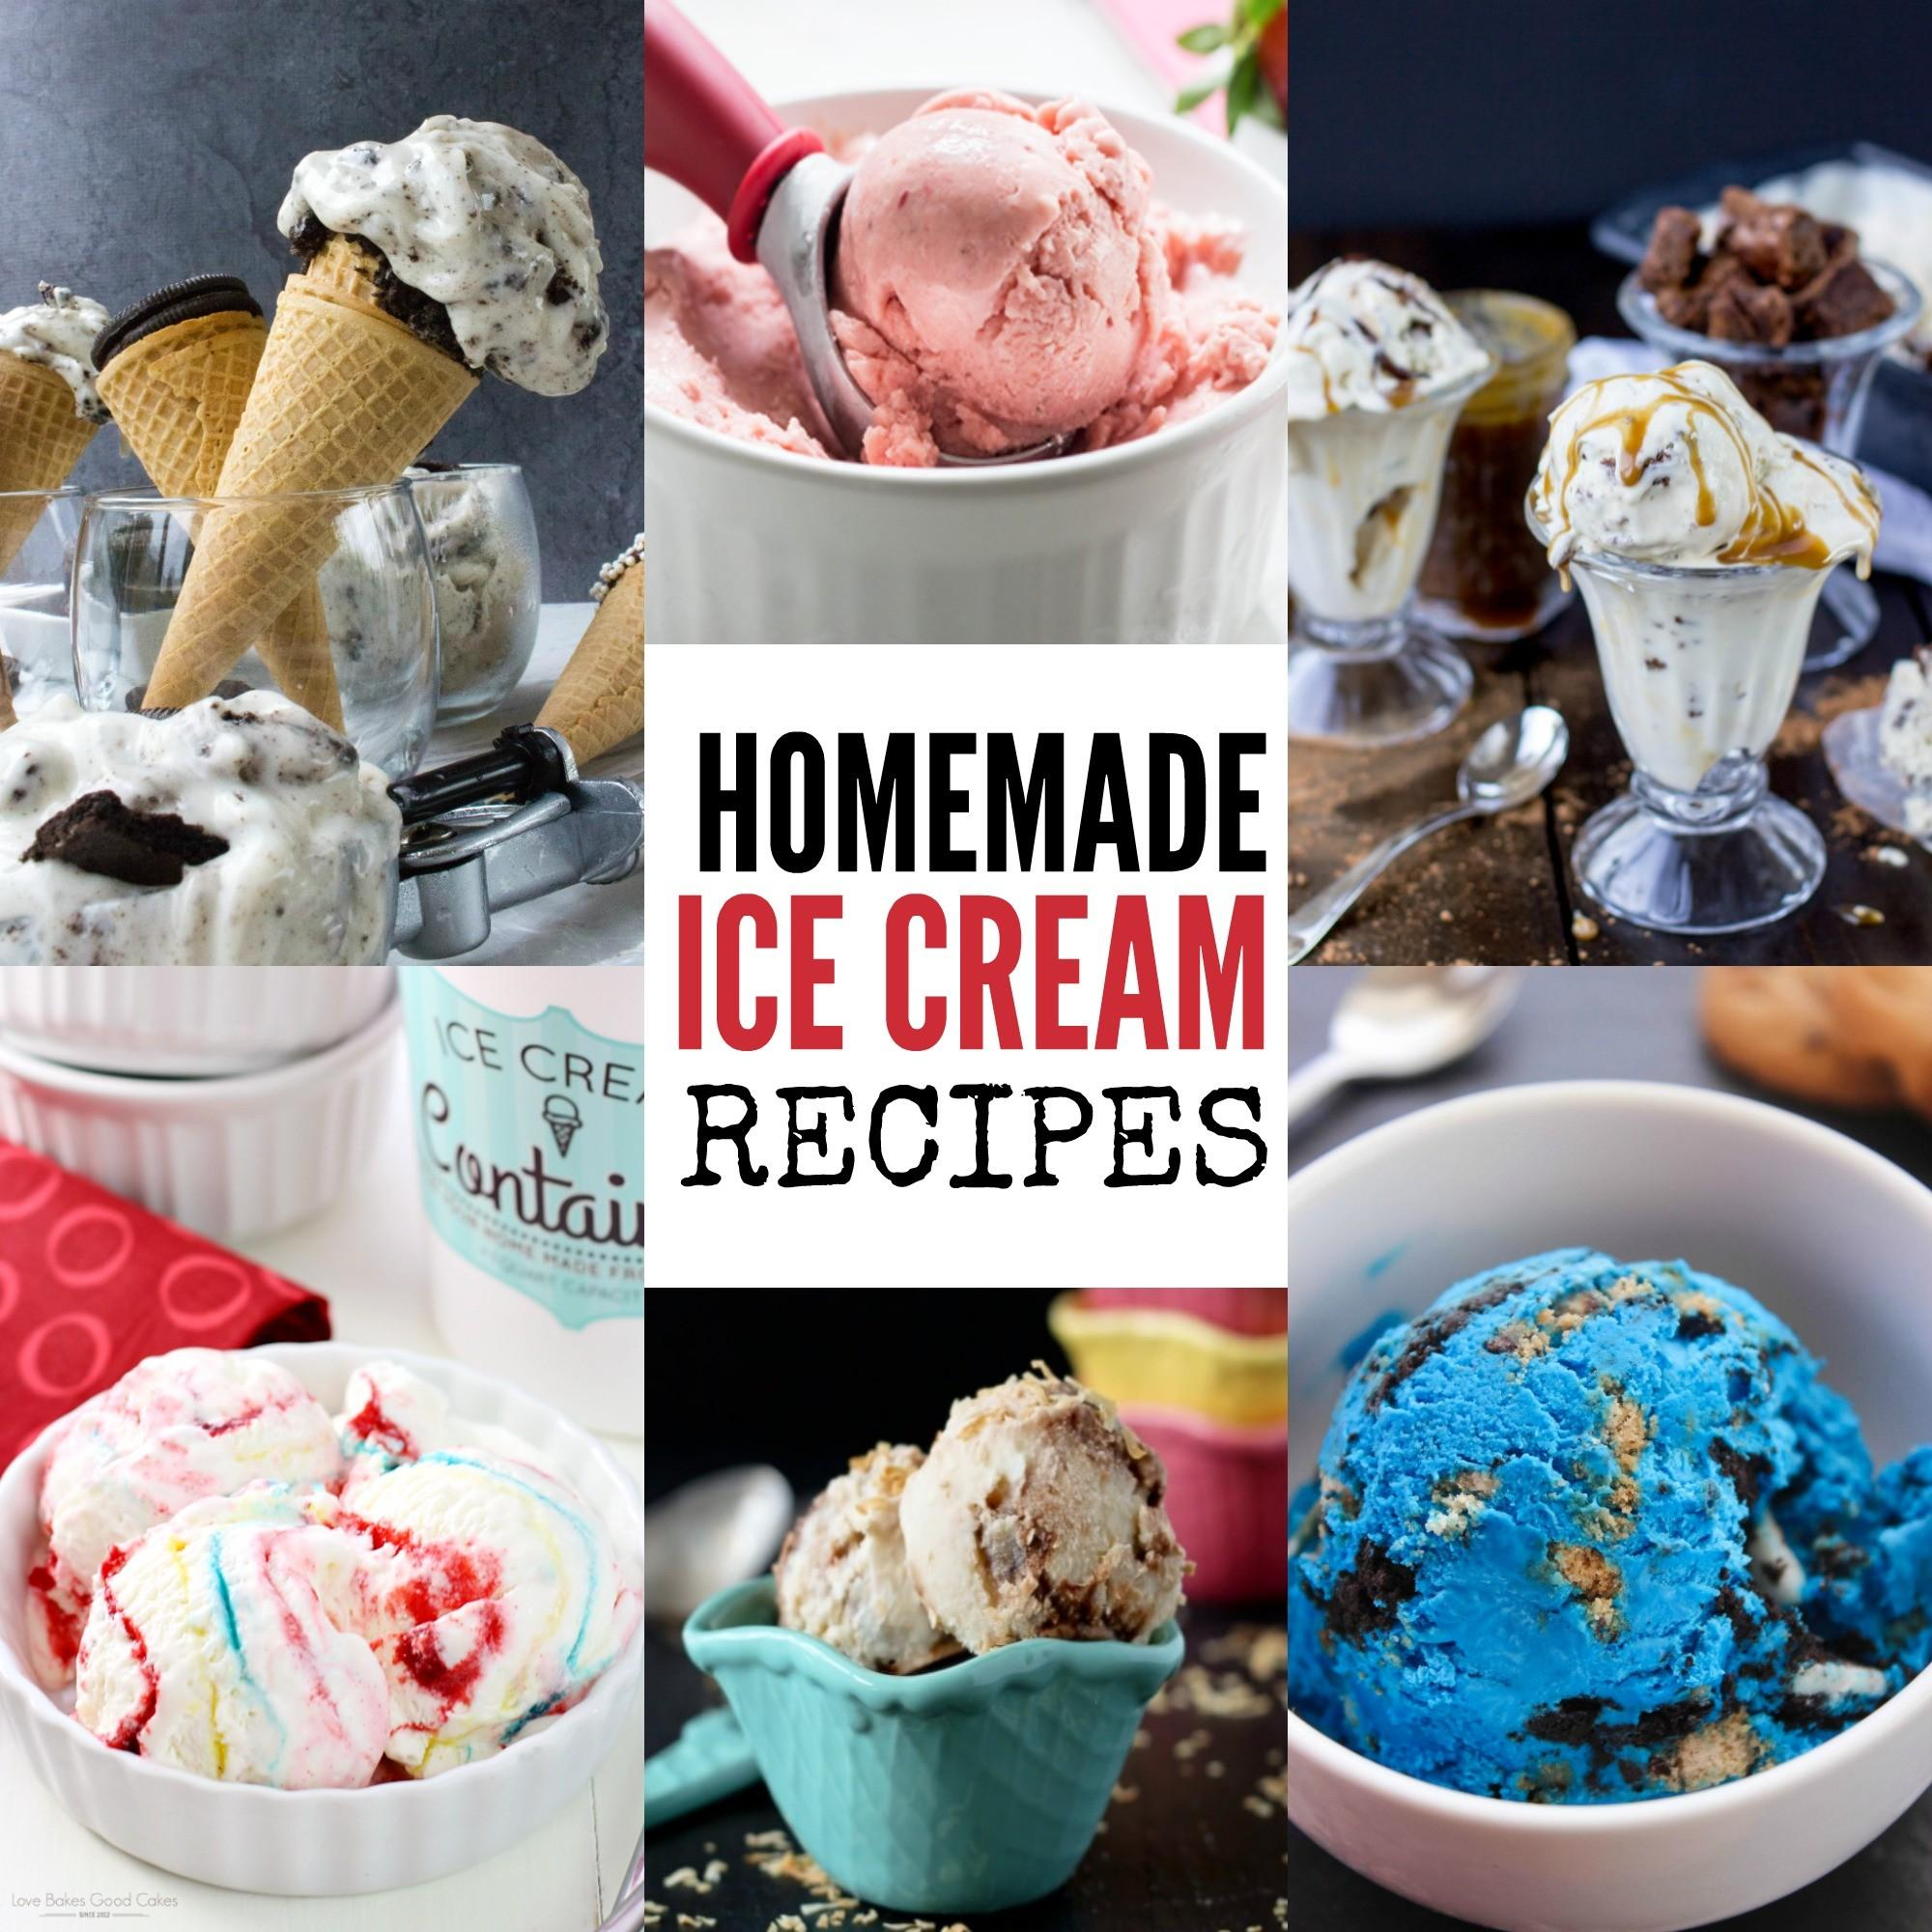 Recipes Homemade Ice Cream